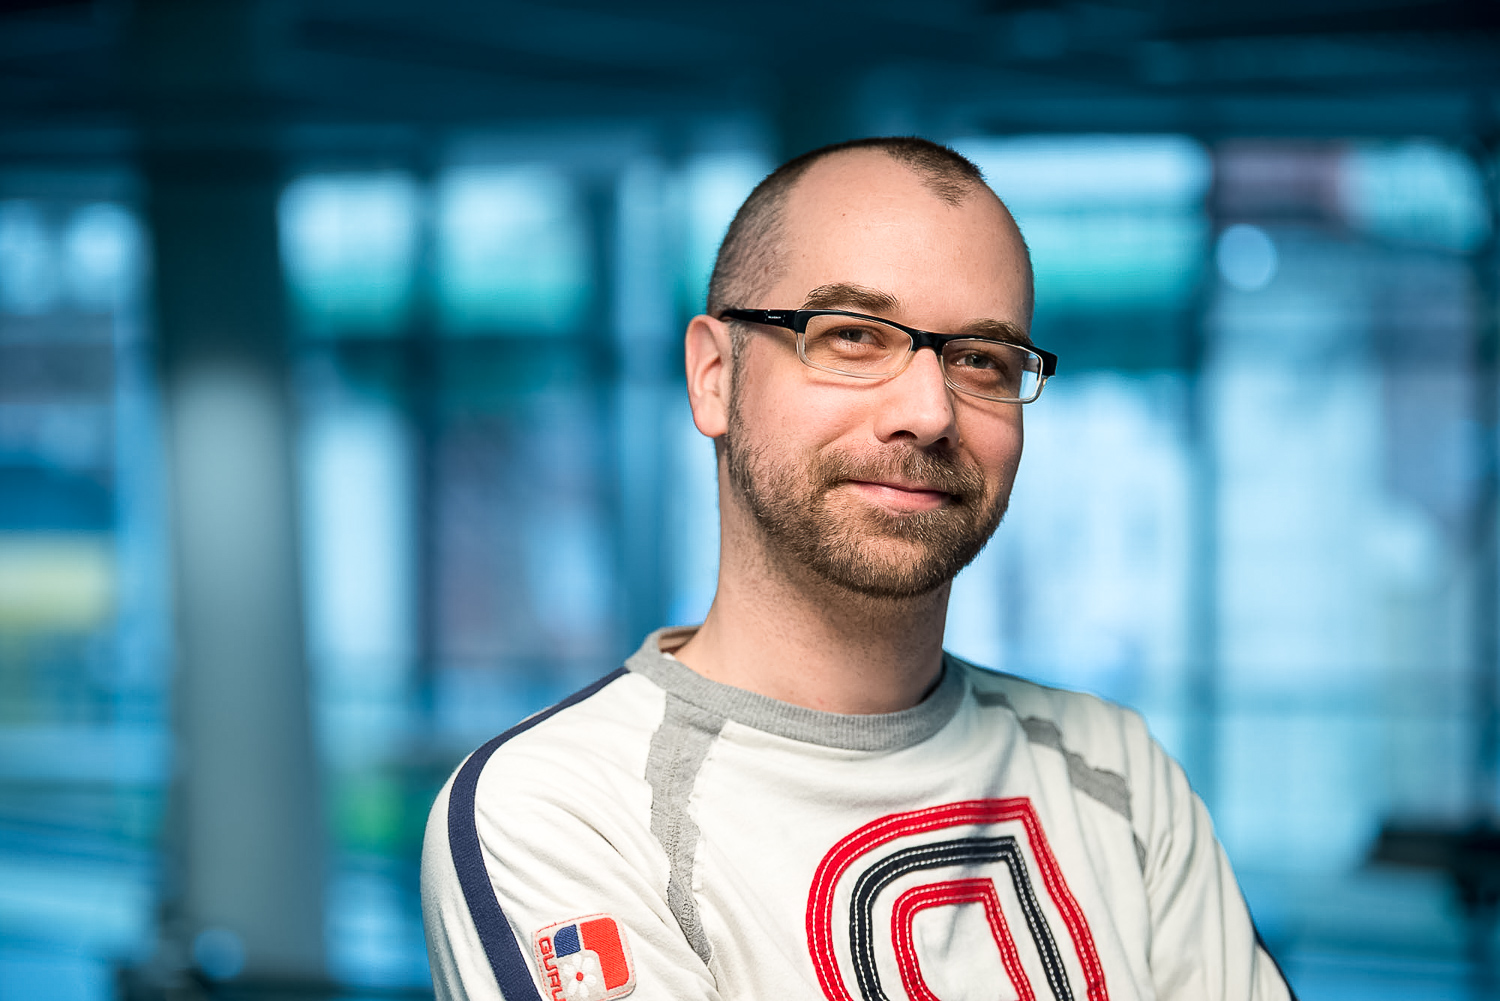 workshop-tejada-134.jpg